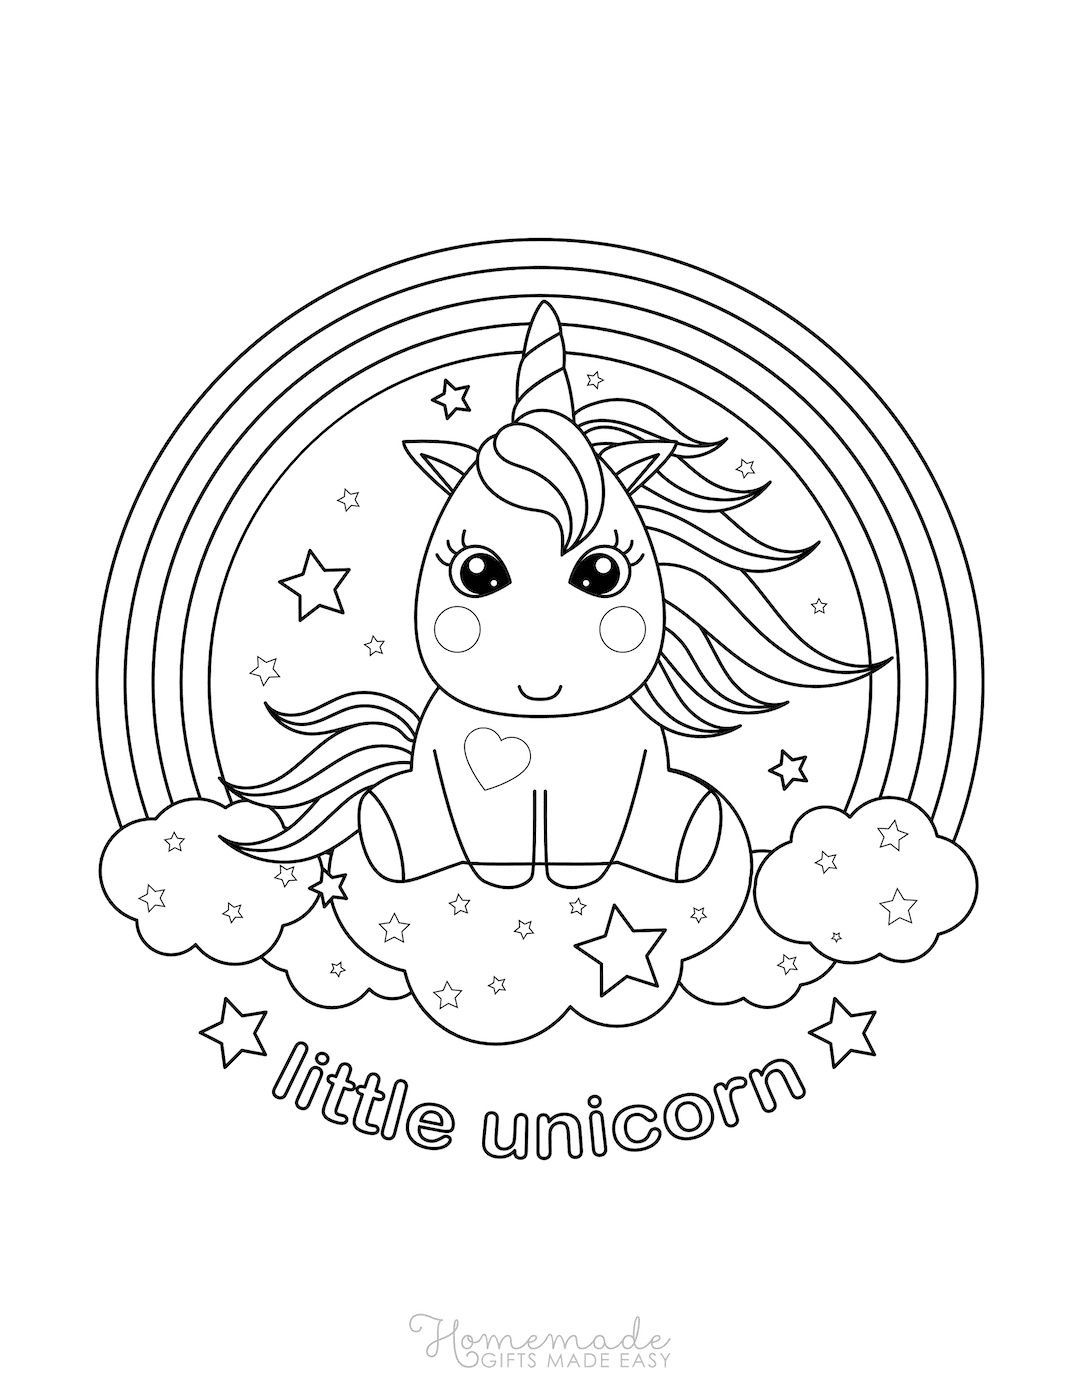 75 Magical Unicorn Coloring Pages For Kids Adults Free Printables In 2020 Unicorn Coloring Pages Coloring Pages Love Coloring Pages